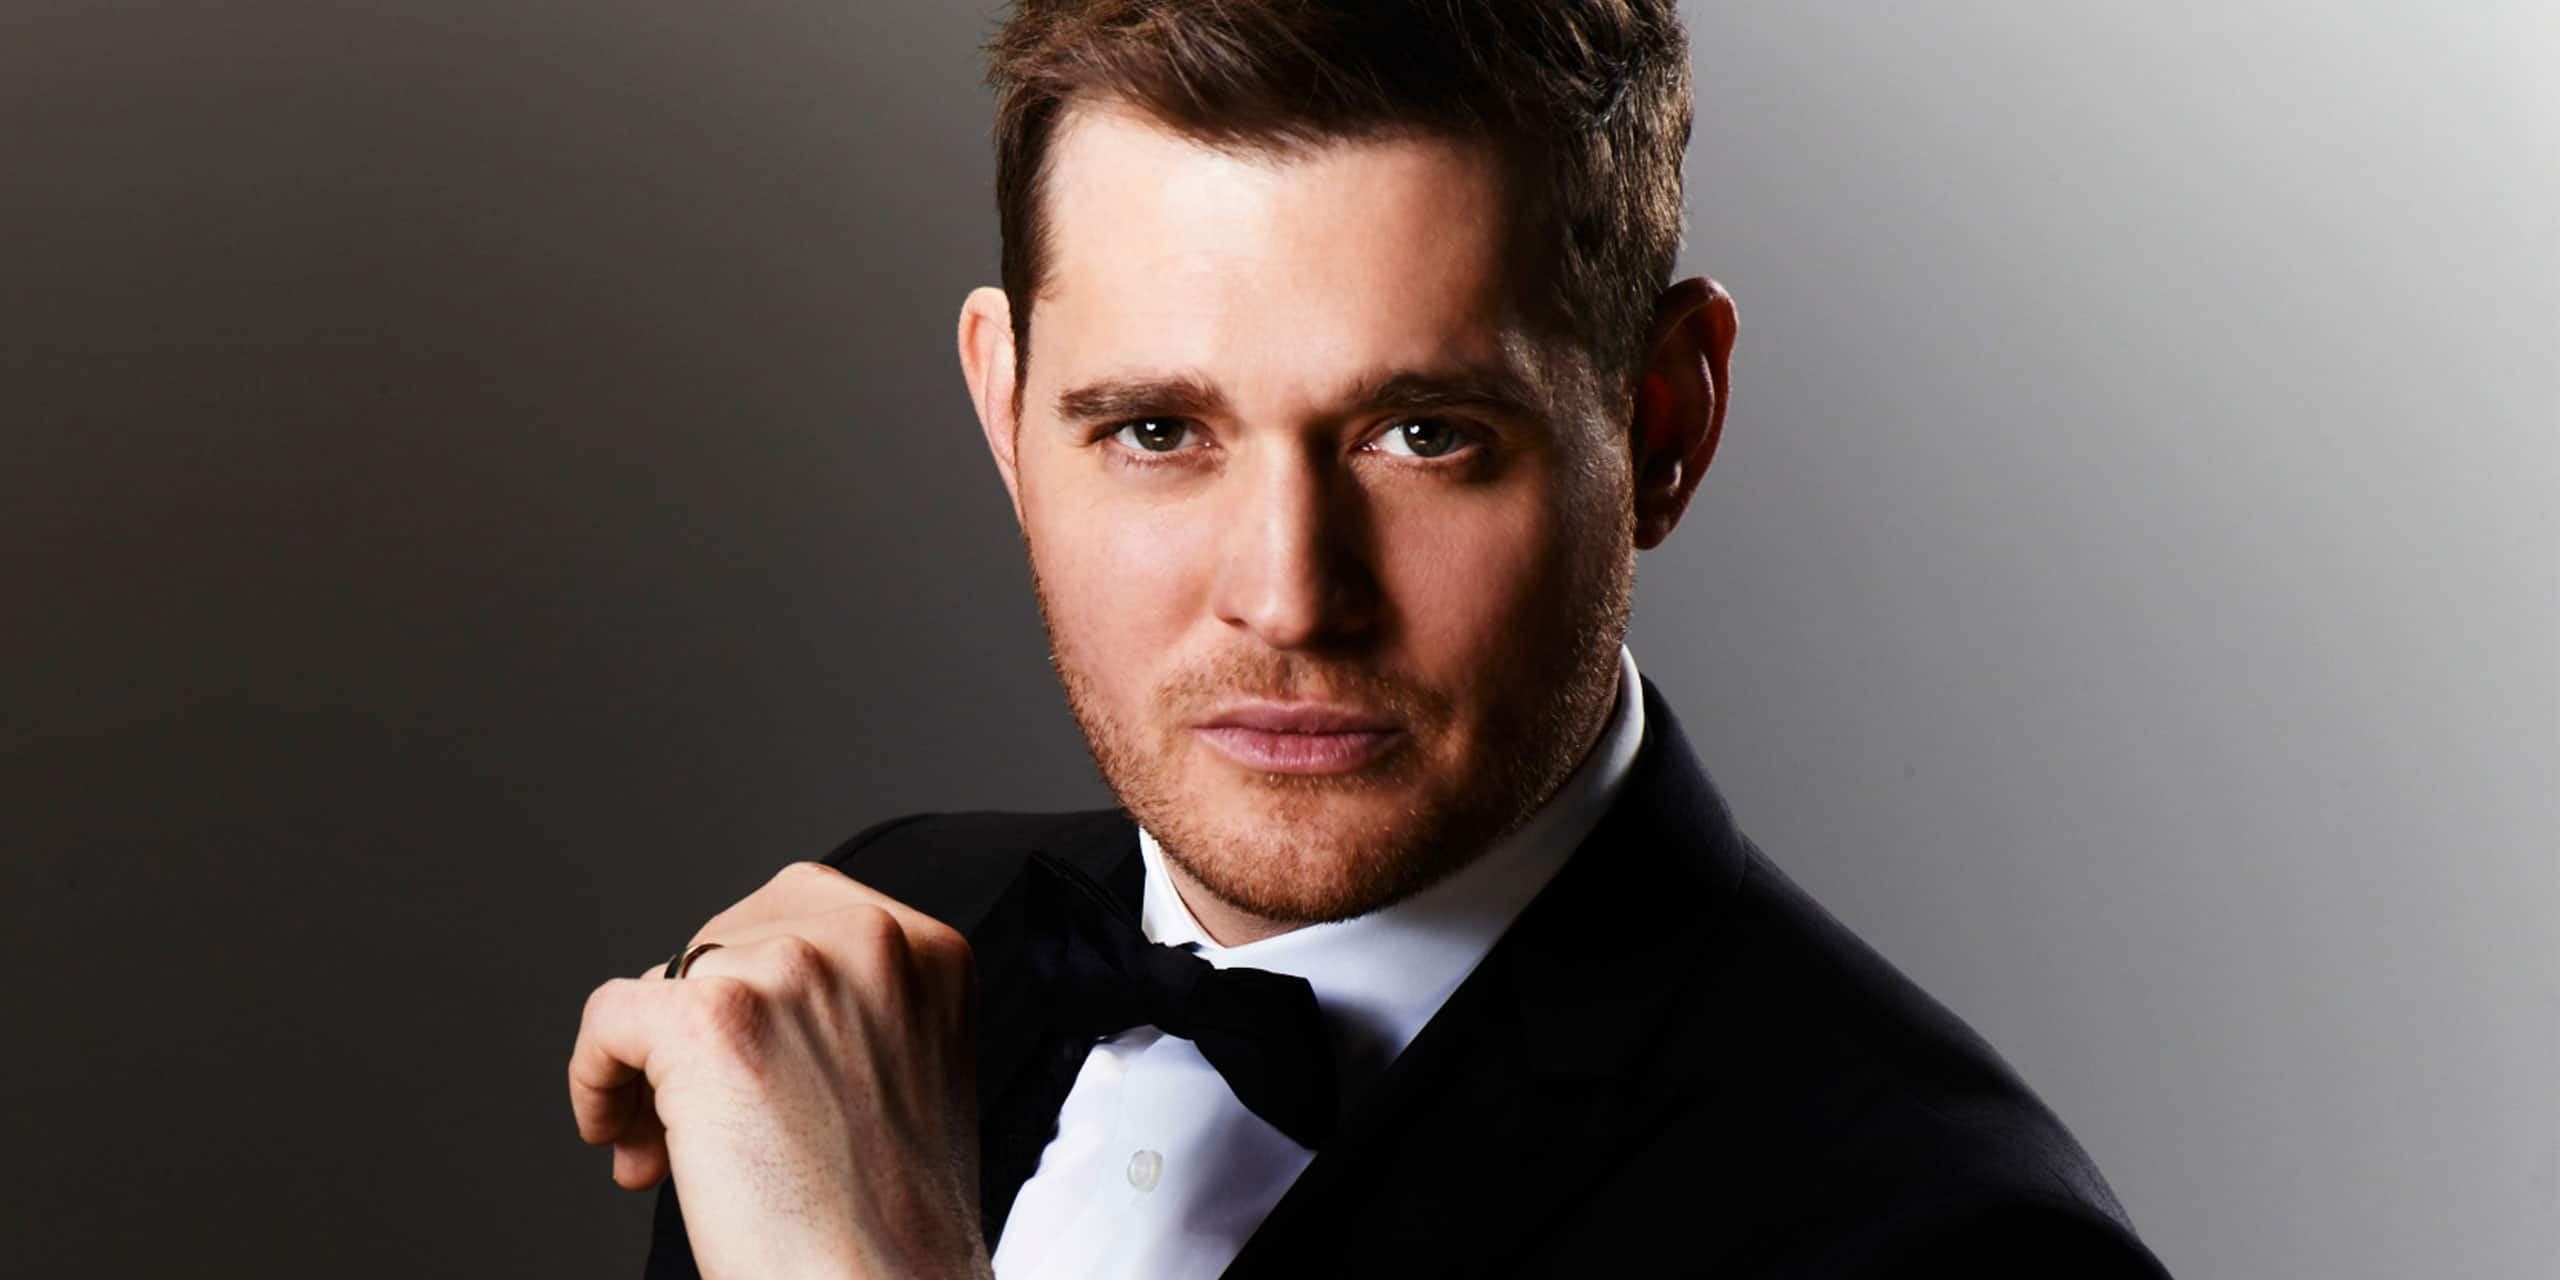 michael buble - photo #36